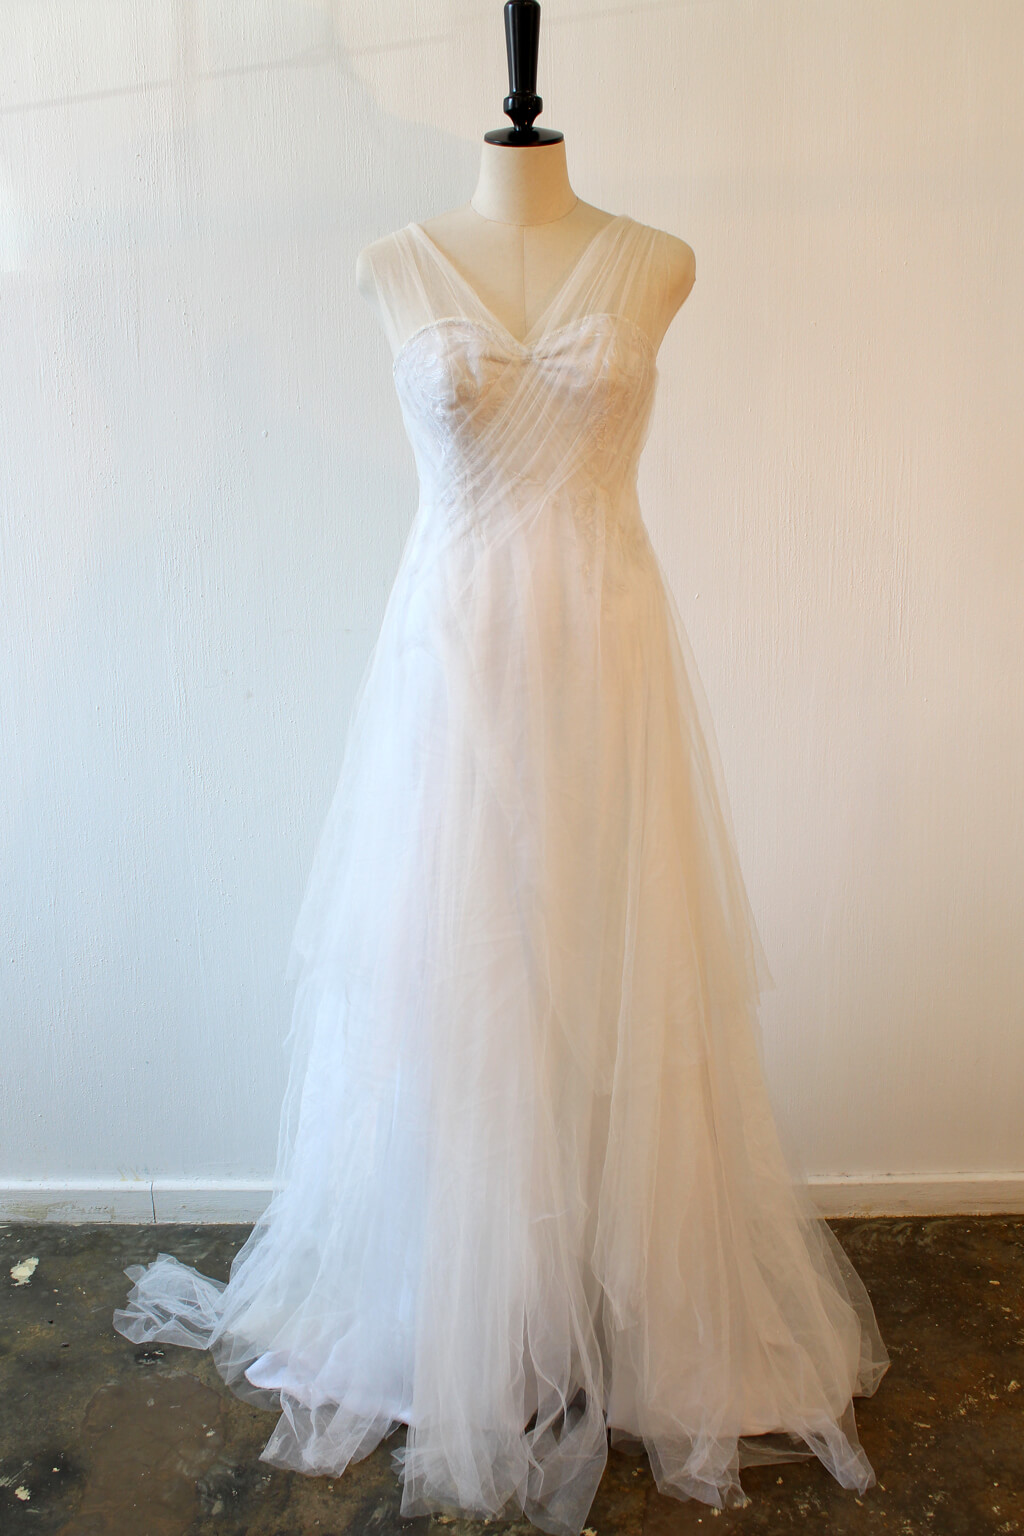 Lunar lace and soft tulle wedding dress